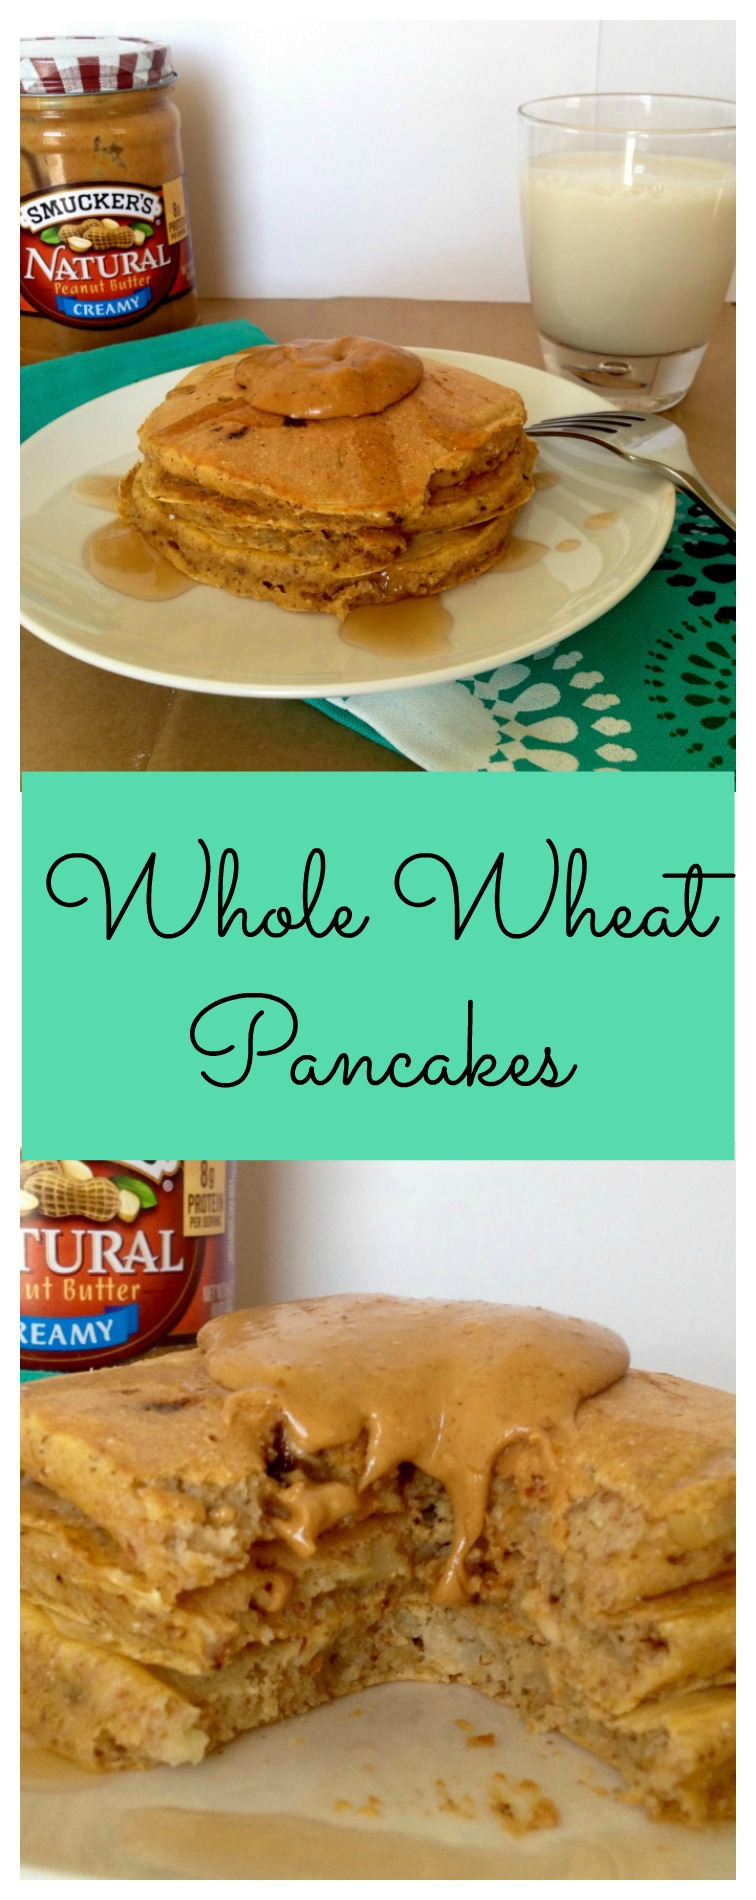 Whole wheat pancakes filled with ingredients you can feel good about: wheat flour, oats, greek yogurt, flax, etc